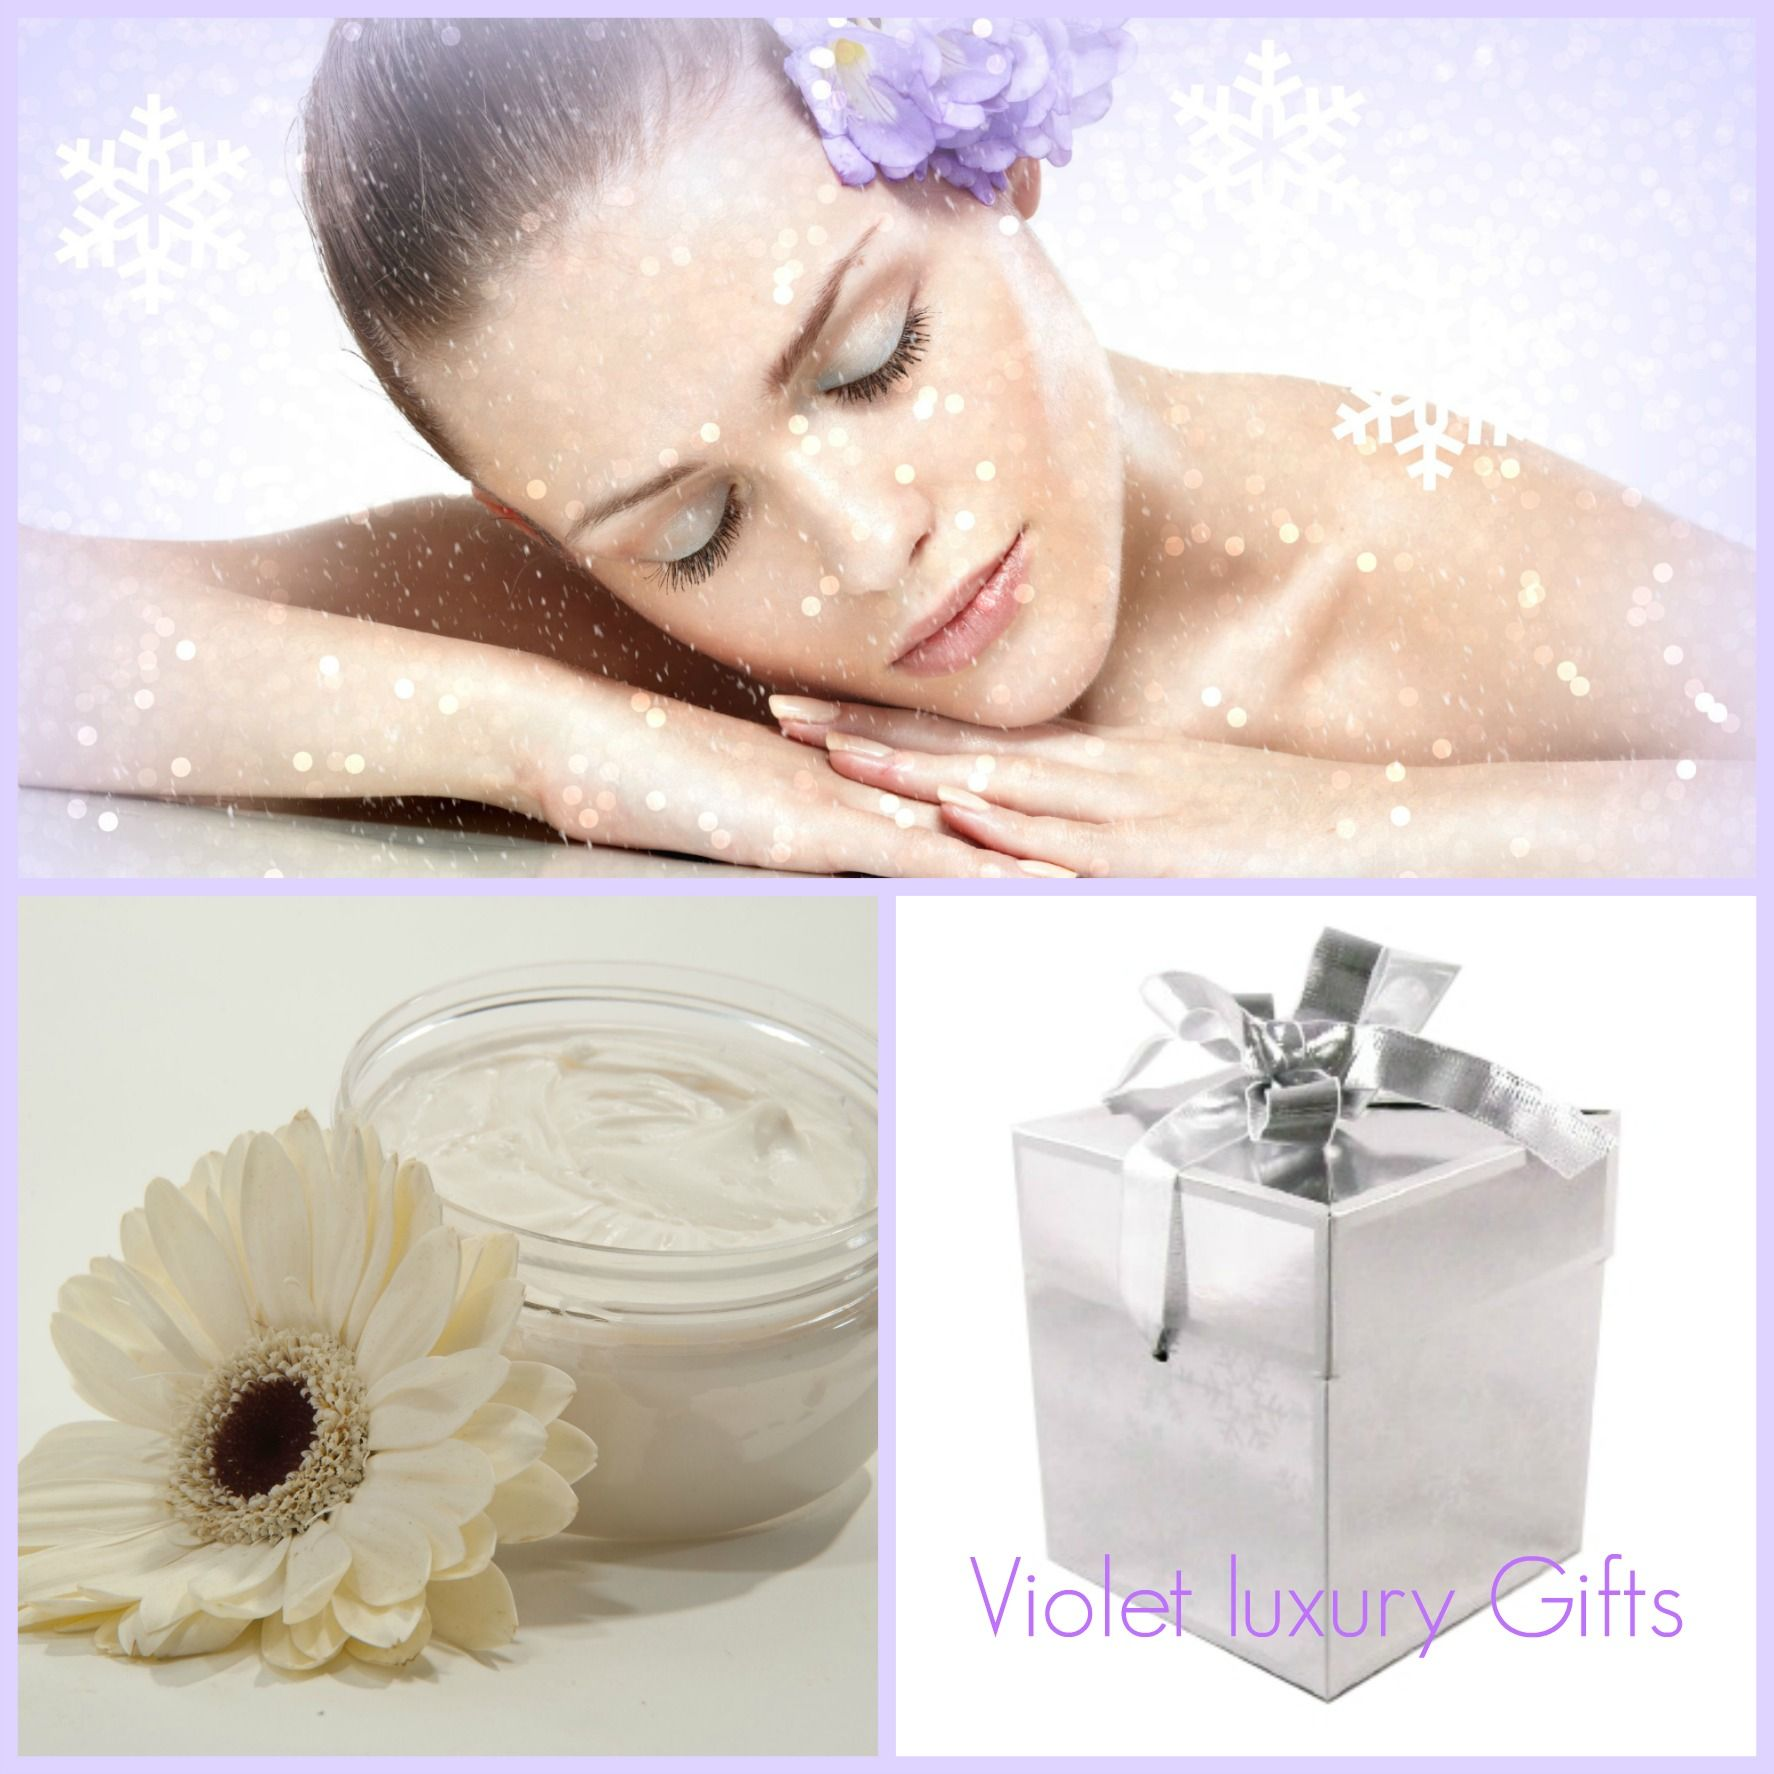 With only 3 more days until Christmas, the countdown to New Years has just begun. Start next year's giving early, with one of Violet's signature services or products www.VioletSkinBoutique.com